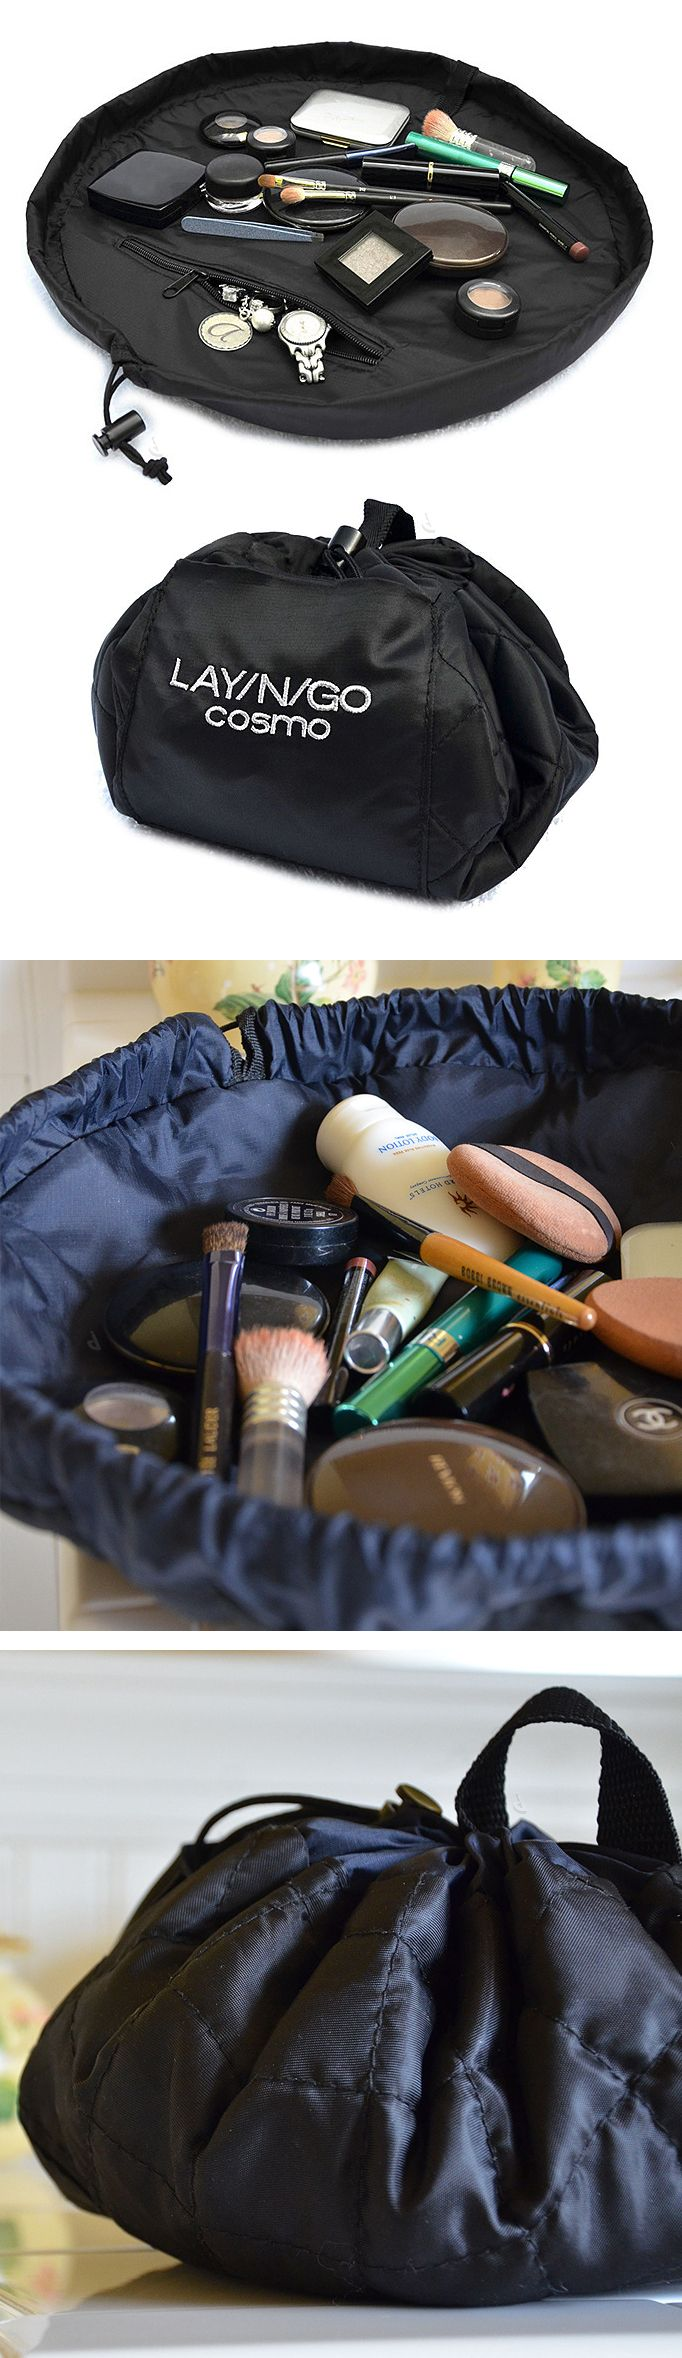 Lay-N-Go Cosmetic Bag // lays flat so you can see your gear, then simply pull the string to pack up and go! Perfect for travelling! I want!!